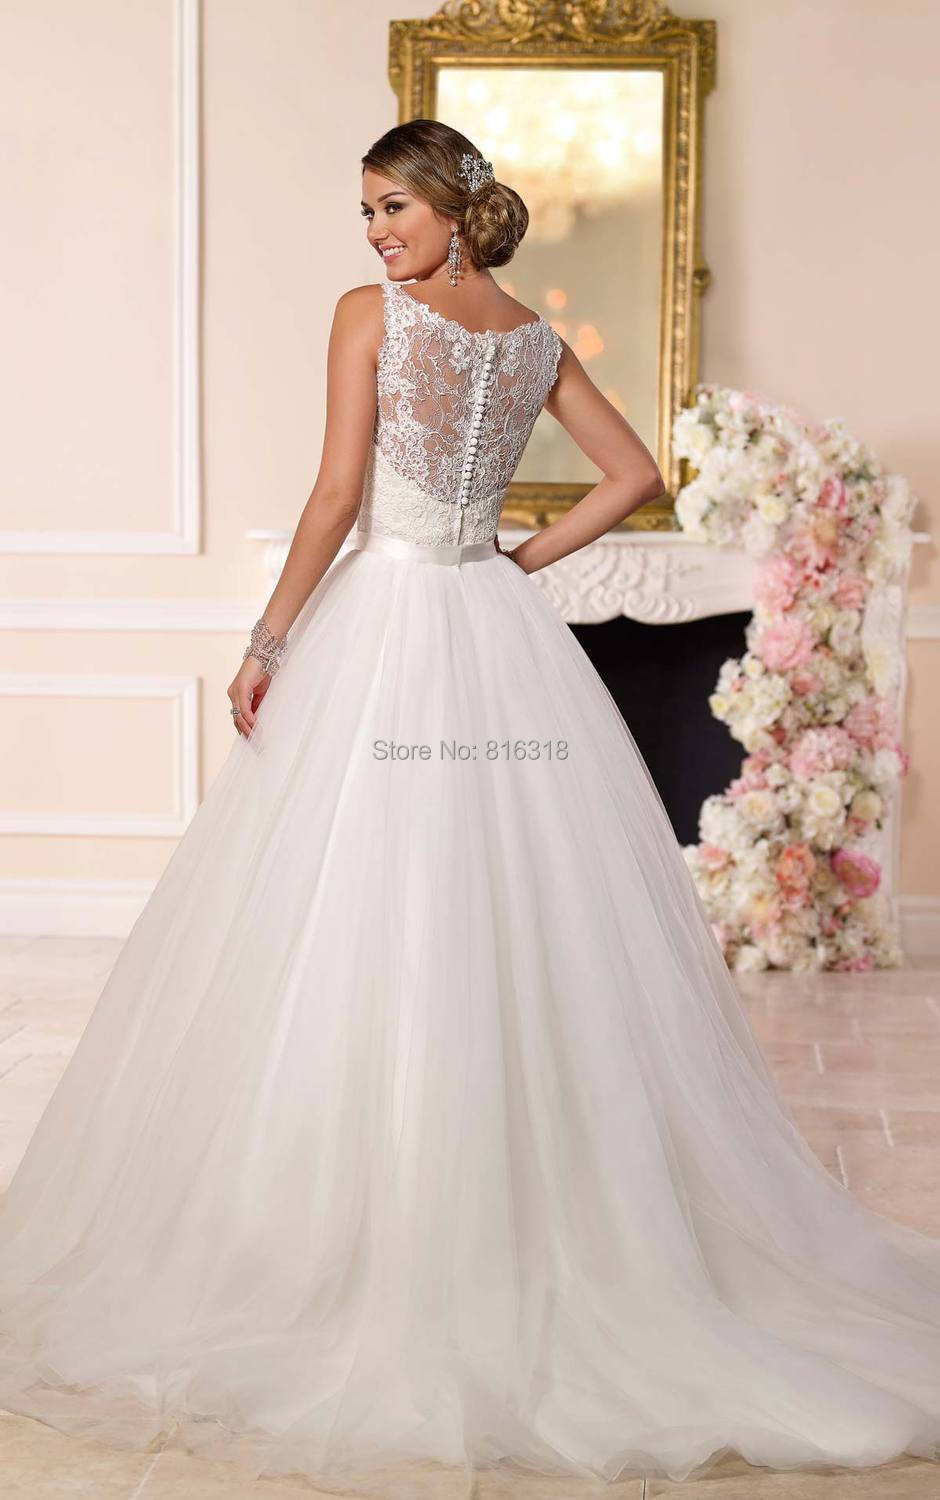 Spaghetti Straps Detachable Skirt Wedding Dress Tulle and Lace ...